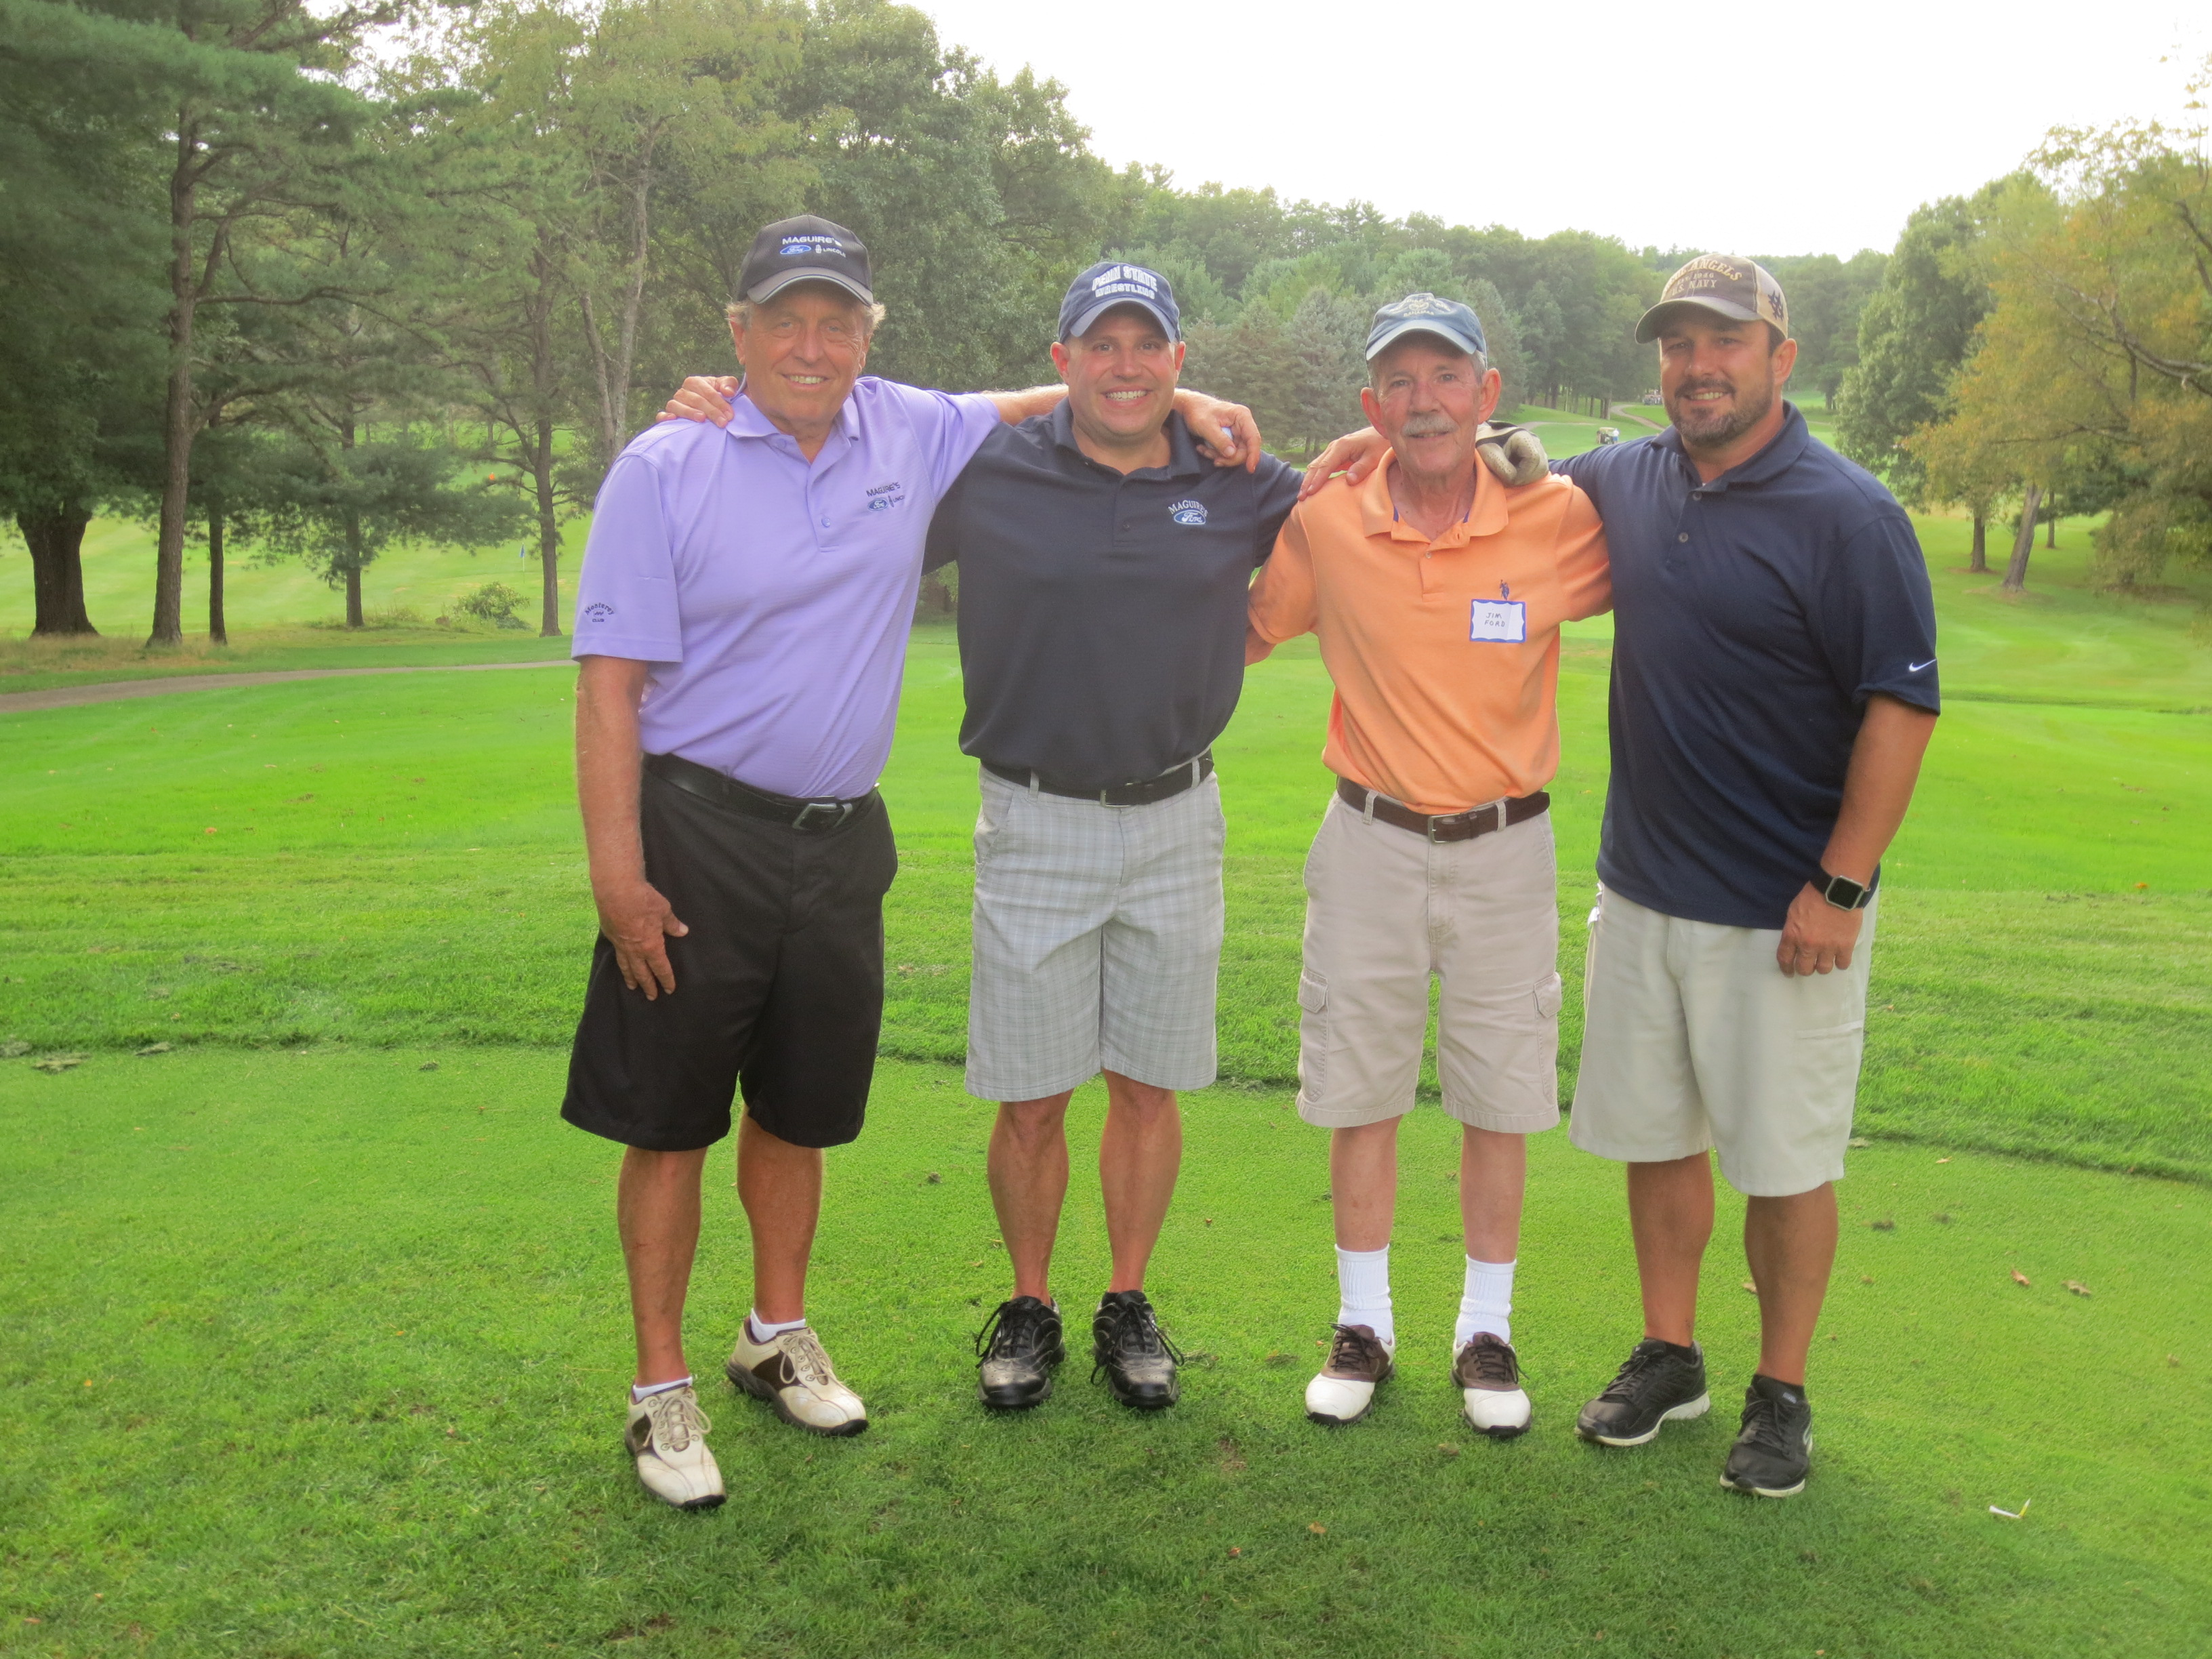 Gordon Oeschger, Ryan Rohrer, Jim Ford, Jason Ford